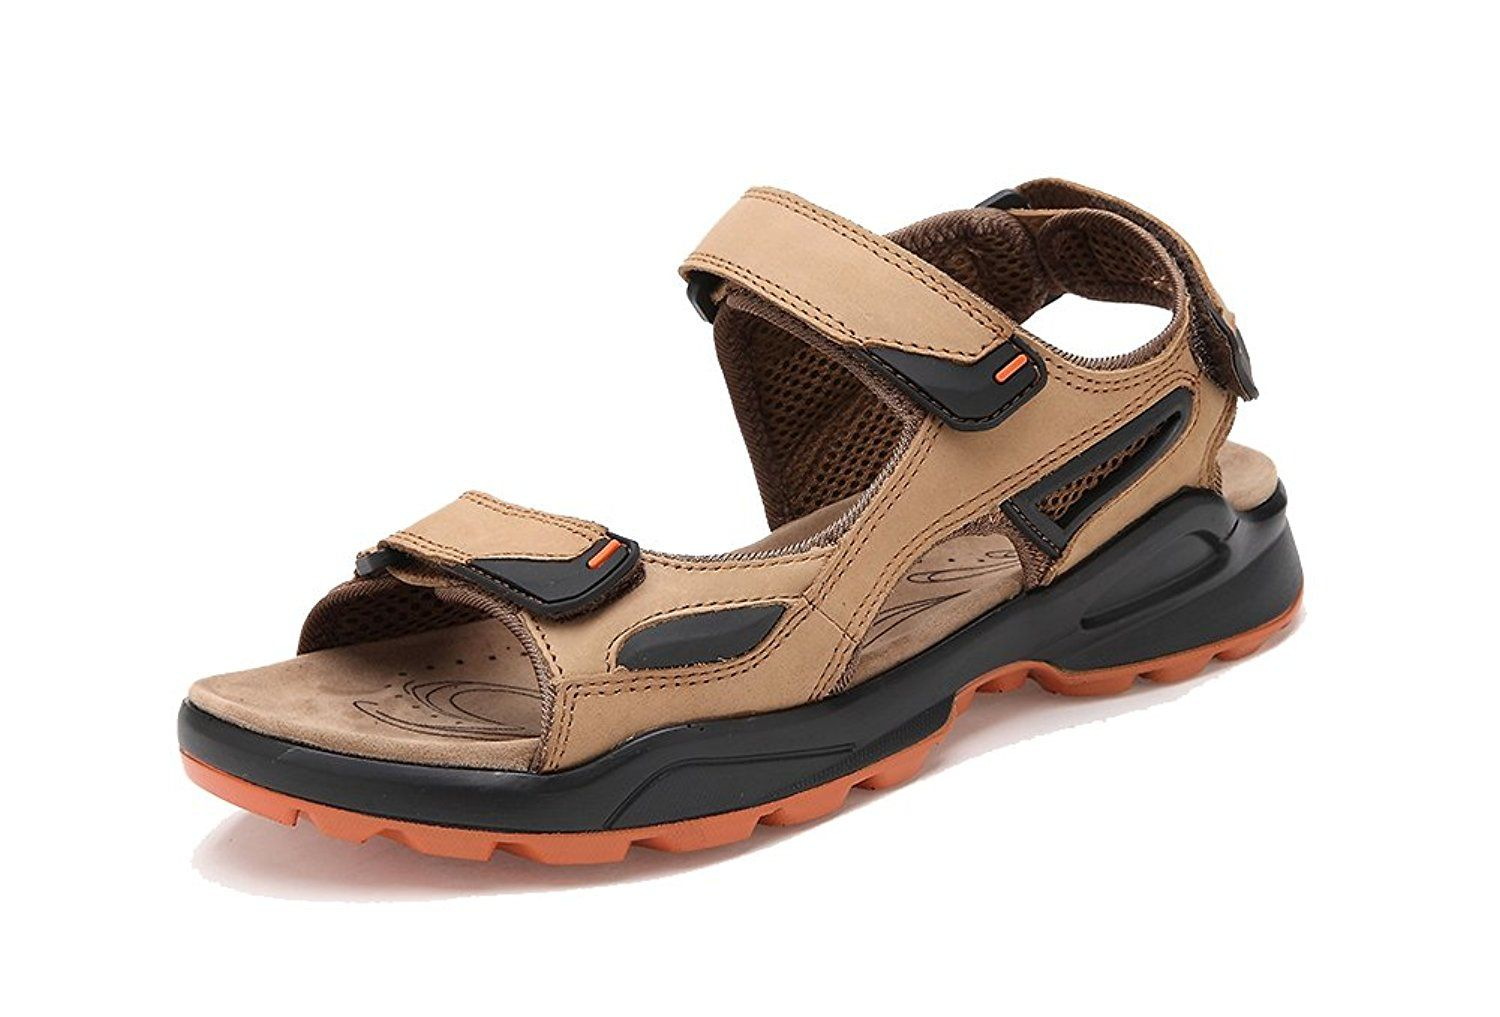 e6bce389b654c Agowoo Women's Open Toe Ankle Strap Beach Hiking Sandals * For more ...